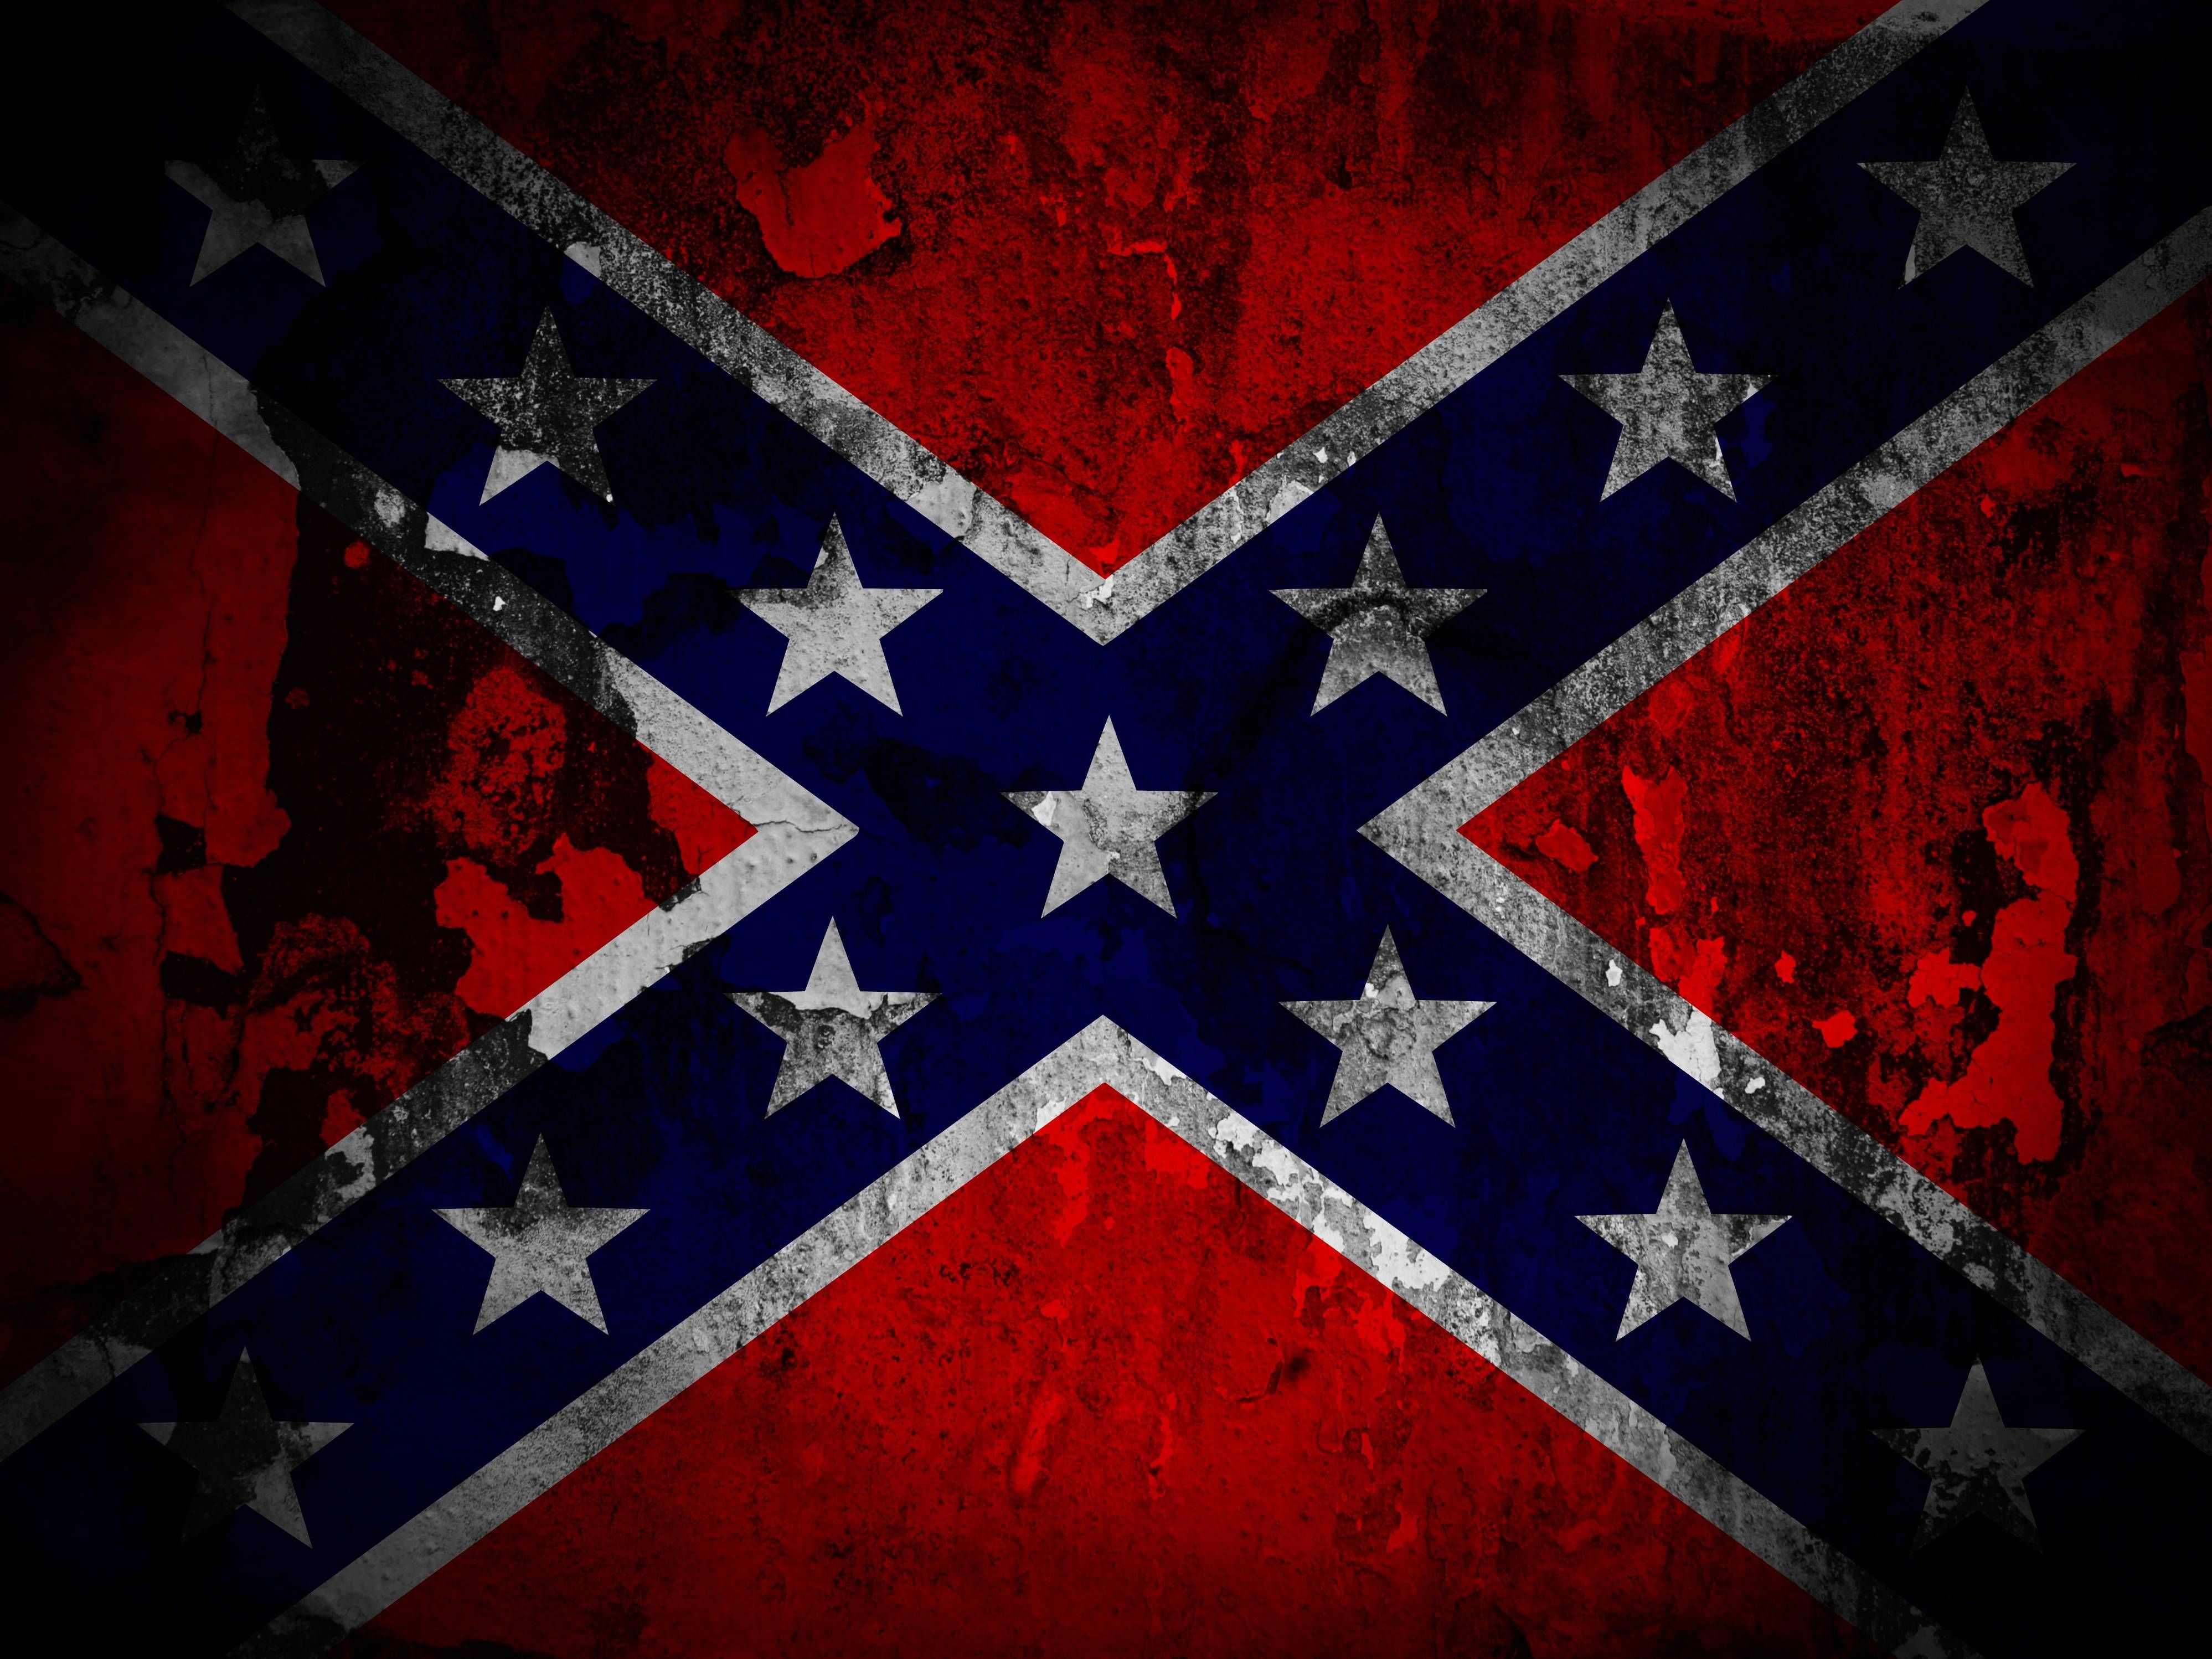 Country Redneck Wallpapers - Top Free Country Redneck Backgrounds